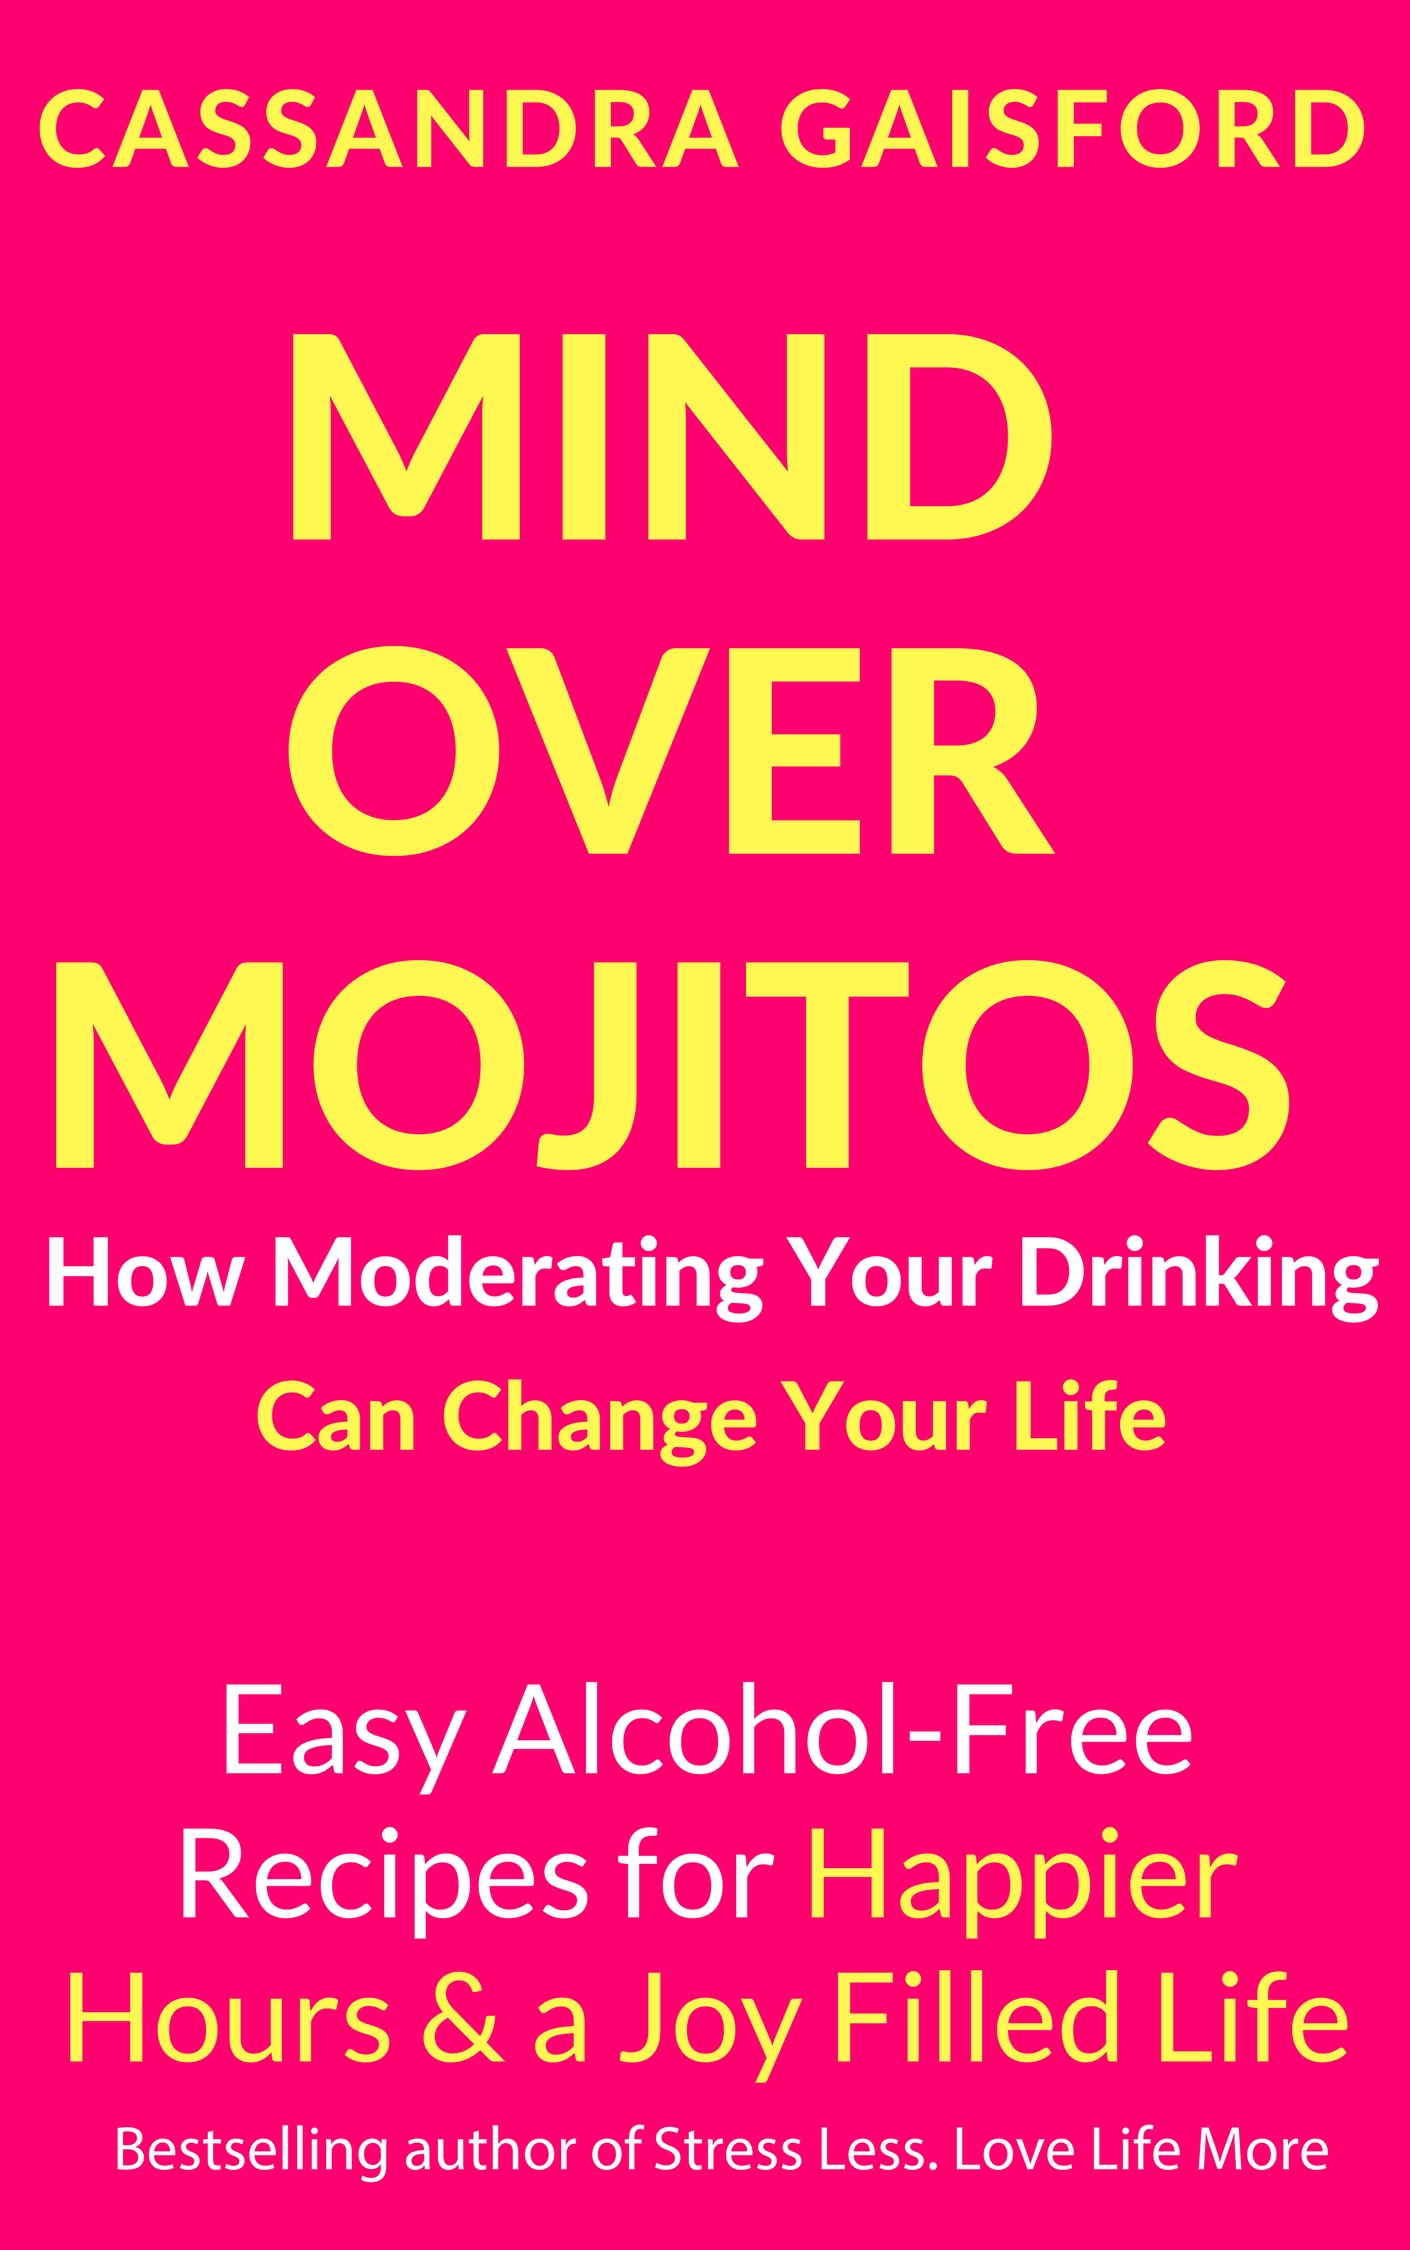 Stress less cassandra gaisford grab a copy of mind over mojitos how moderating your drinking can change your life easy recipes for happier hours a joy filled life and see the scrummy fandeluxe Images